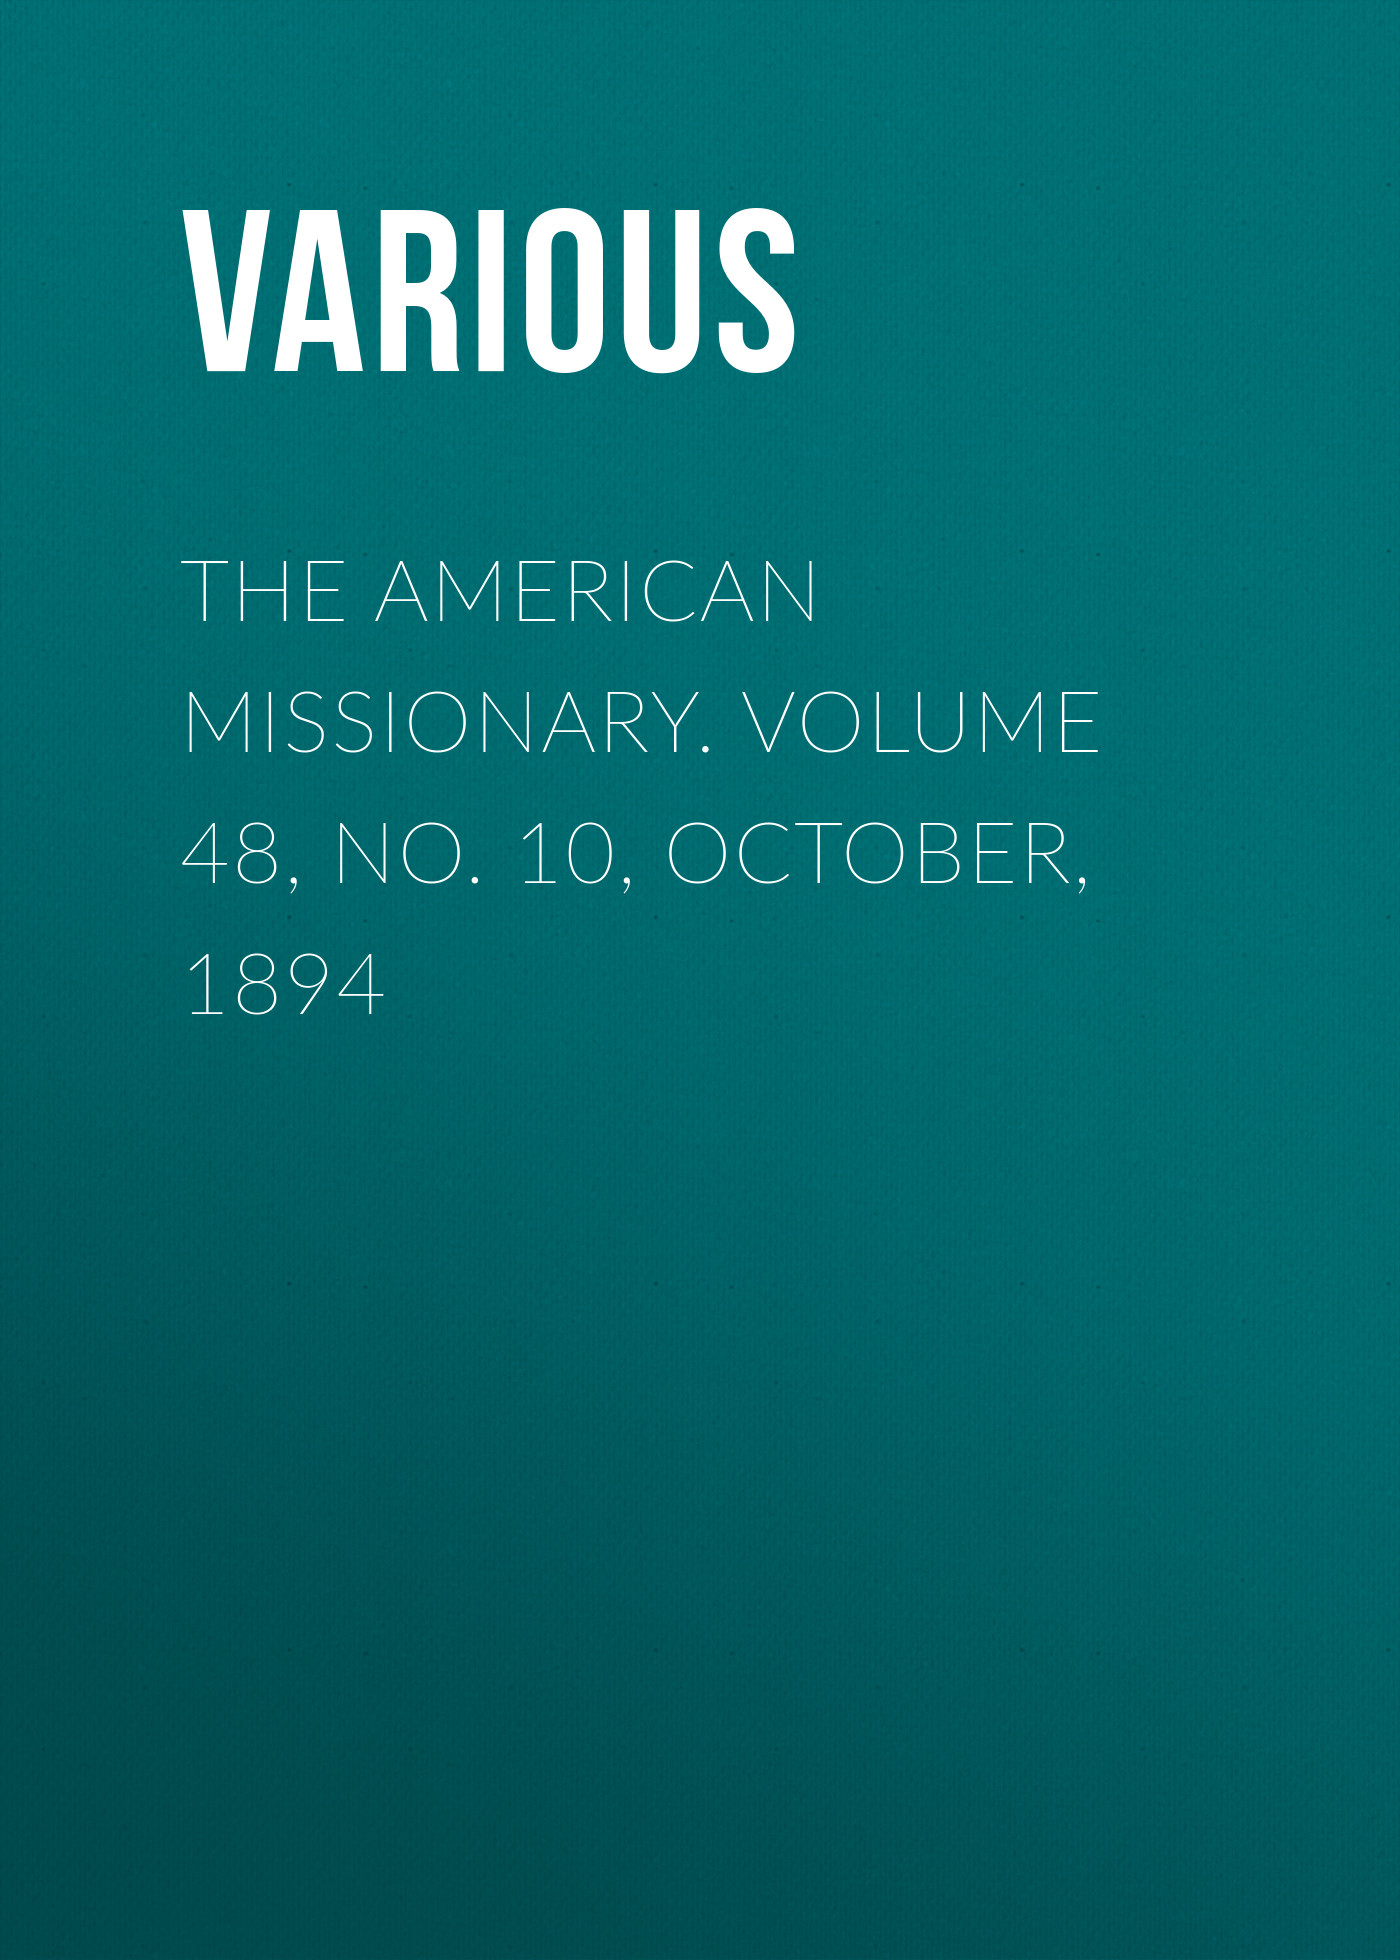 Various The American Missionary. Volume 48, No. 10, October, 1894